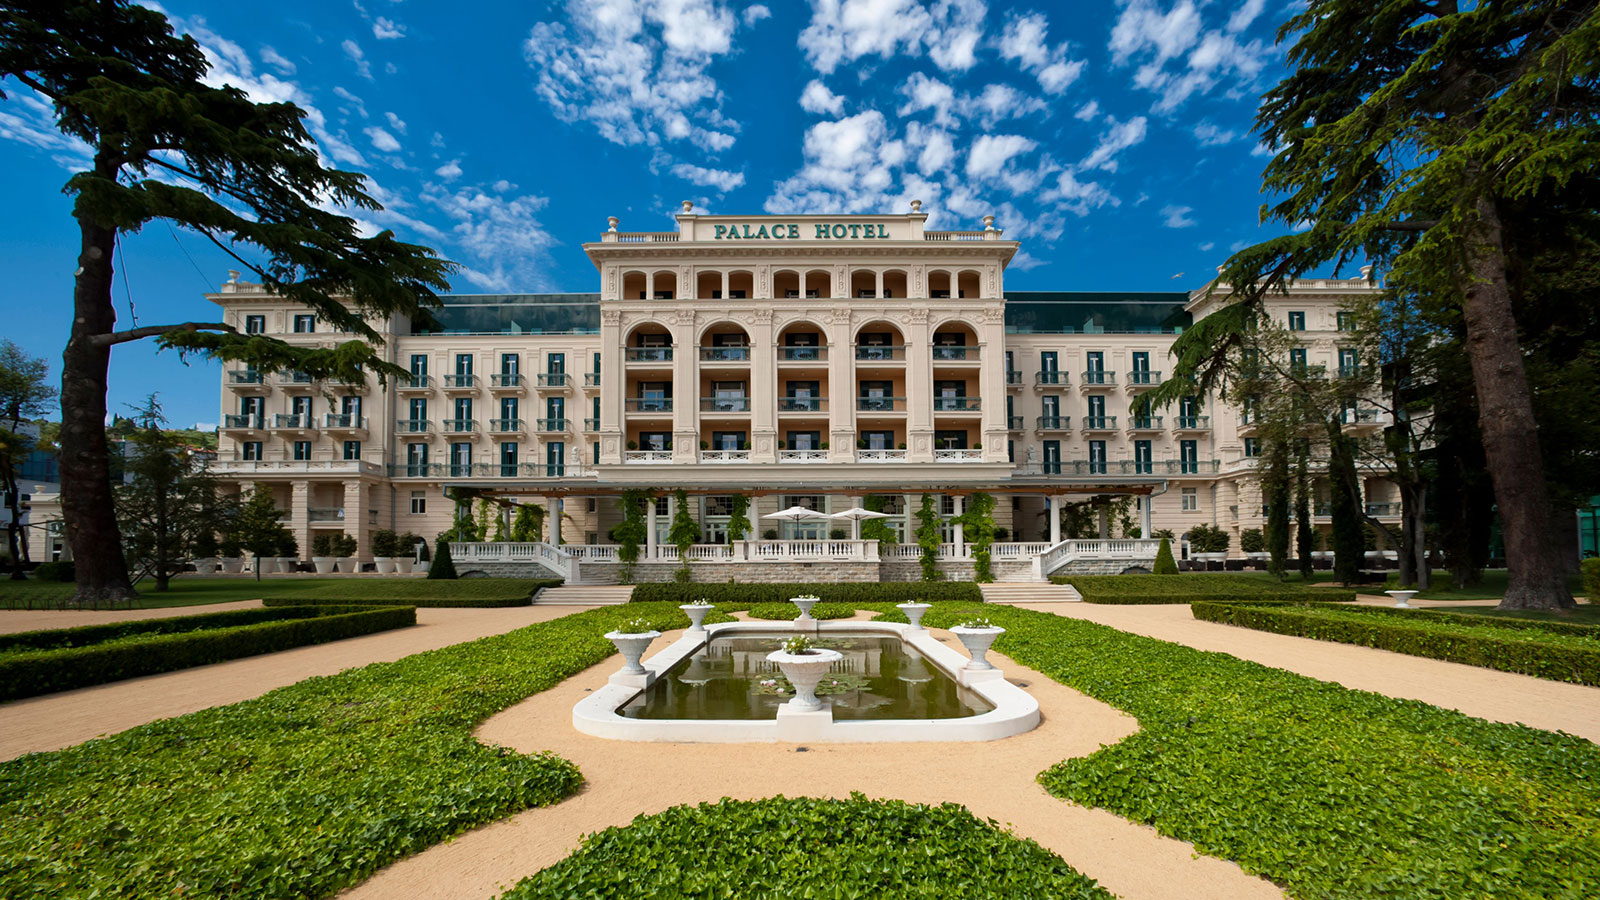 Discover the grand Habsburg-era architecture of the Kempinski Palace Portorož.